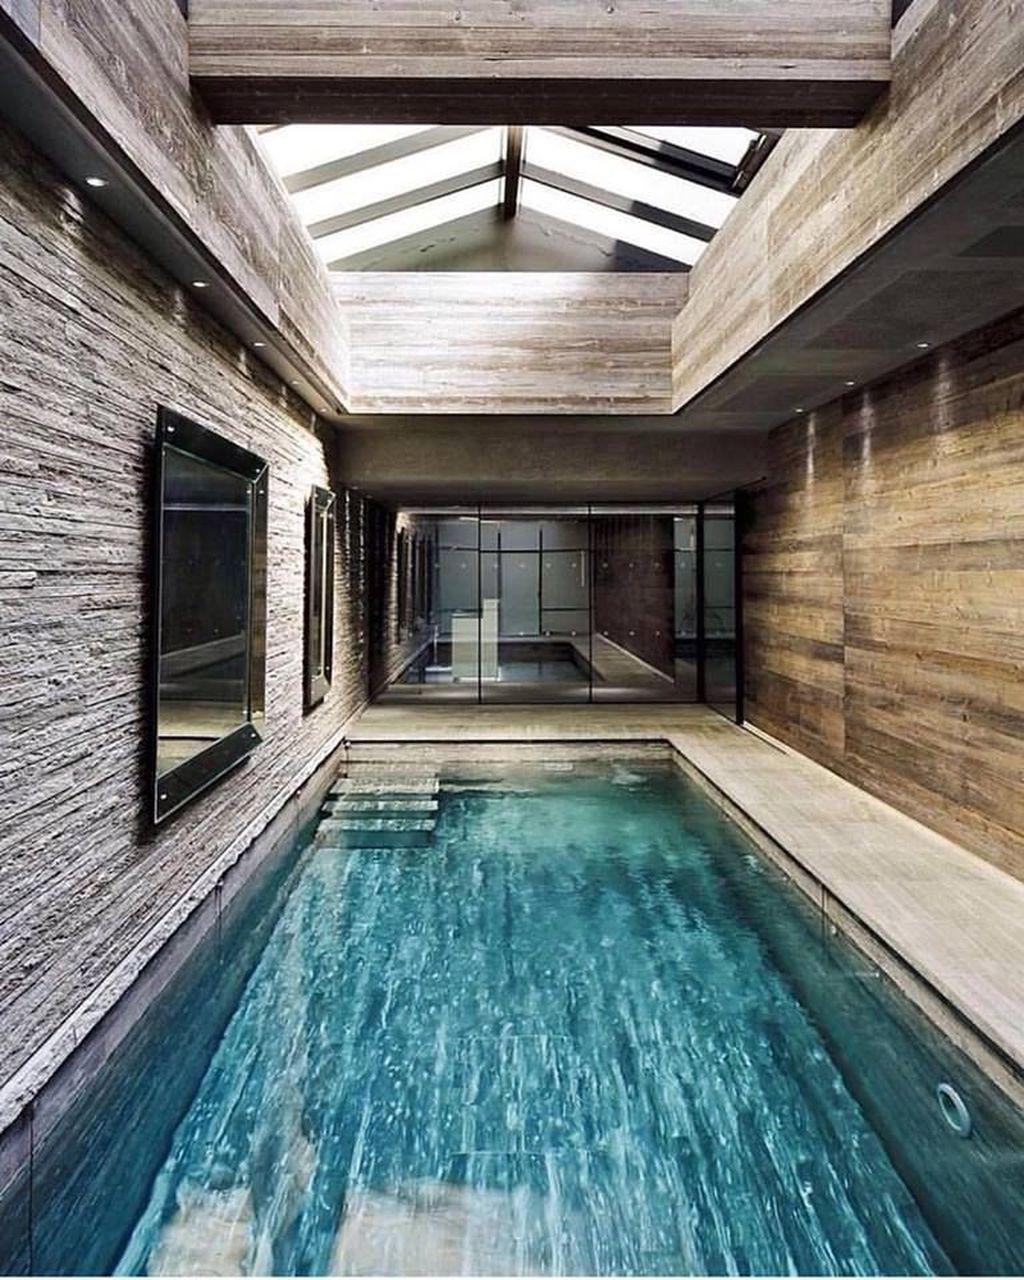 Swimming Pool Designs Featuring New Swimming Pool Ideas Like Glass Wall Swimming Pools Infi Swimming Pool House Indoor Swimming Pool Design Indoor Pool Design